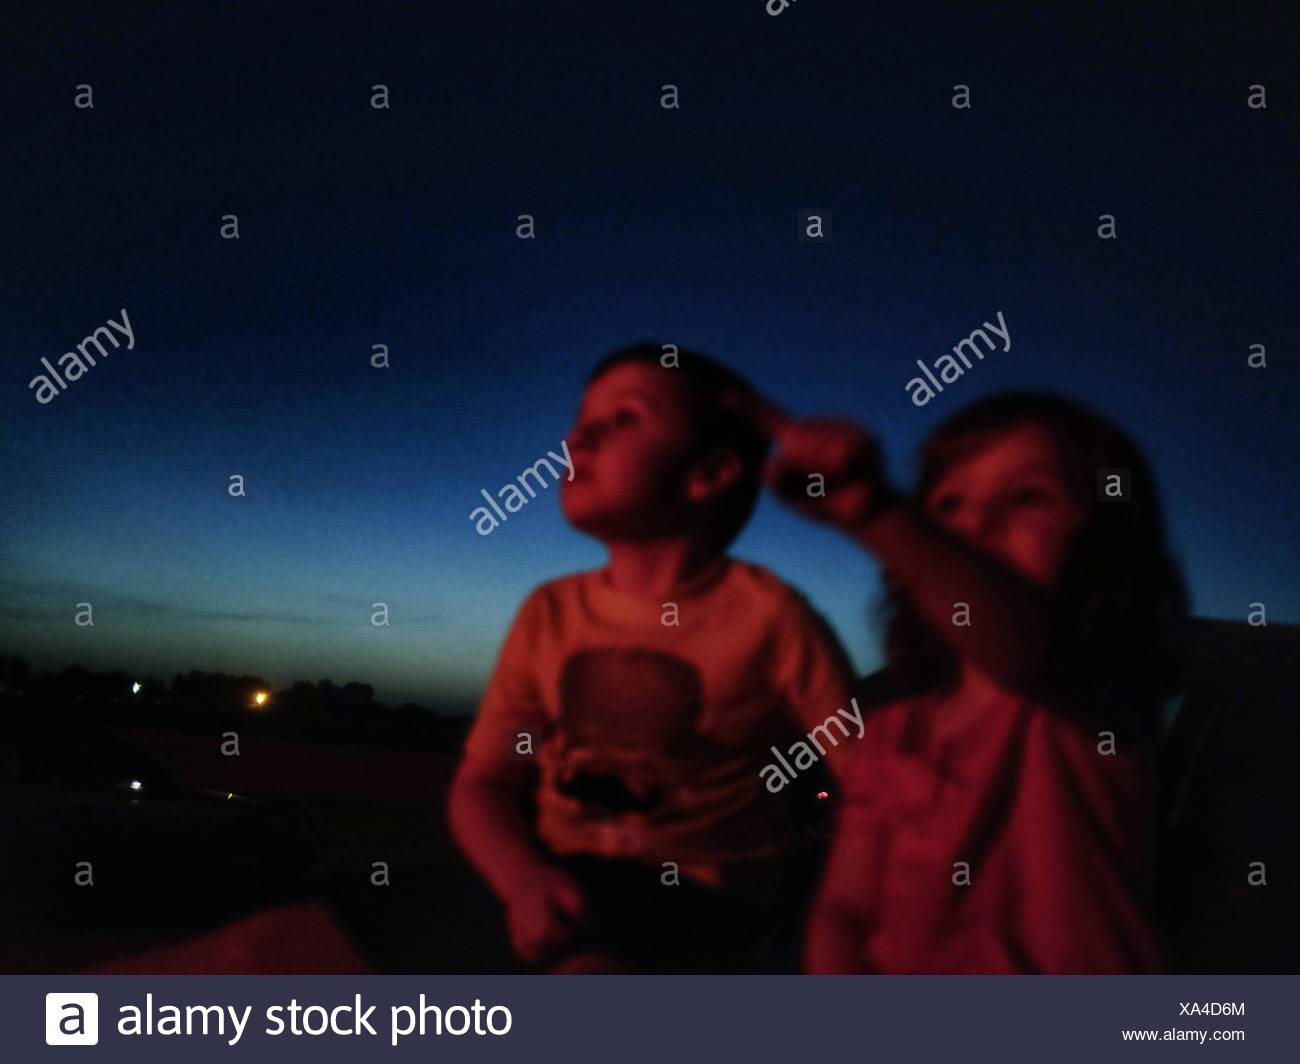 Children Looking At The Night Sky - Stock Image